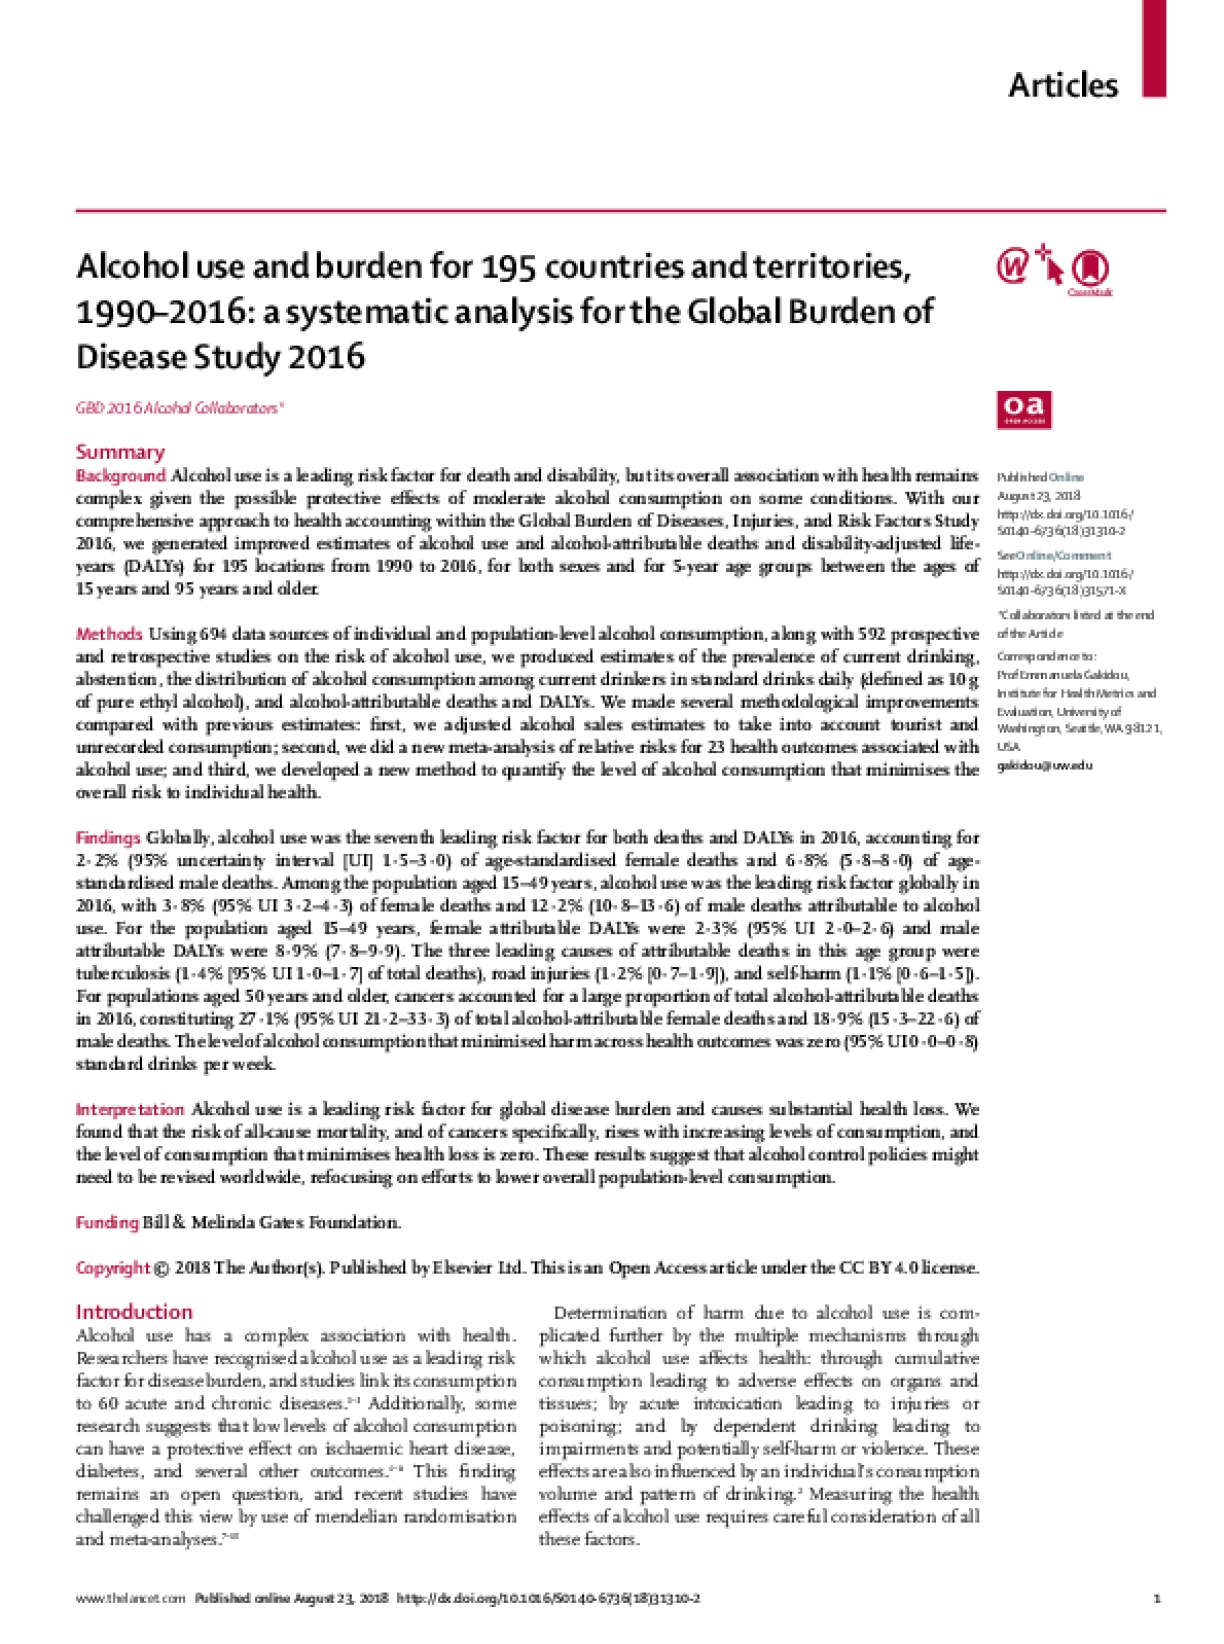 Alcohol use and burden for 195 countries and territories, 1990–2016: a systematic analysis for the Global Burden of Disease Study 2016